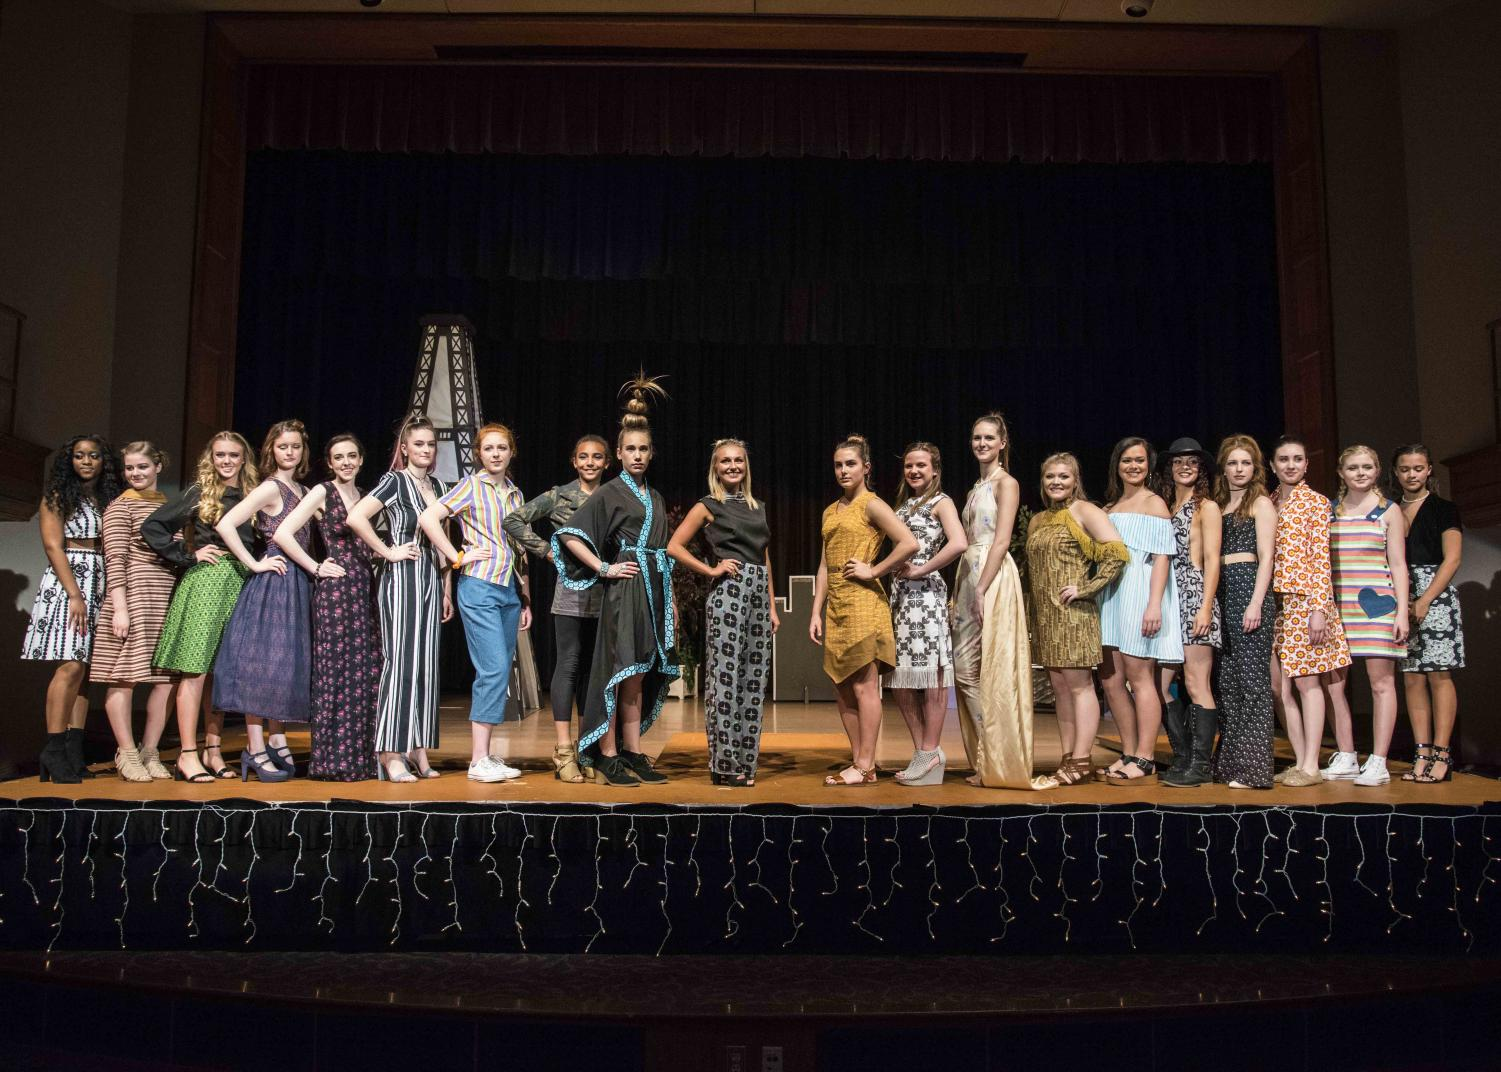 UNI's Textiles and Apparel program will be presenting their 26th annual Catwalk fashion show in Lang Hall Auditorium at 7 p.m. on Saturday, April 21.